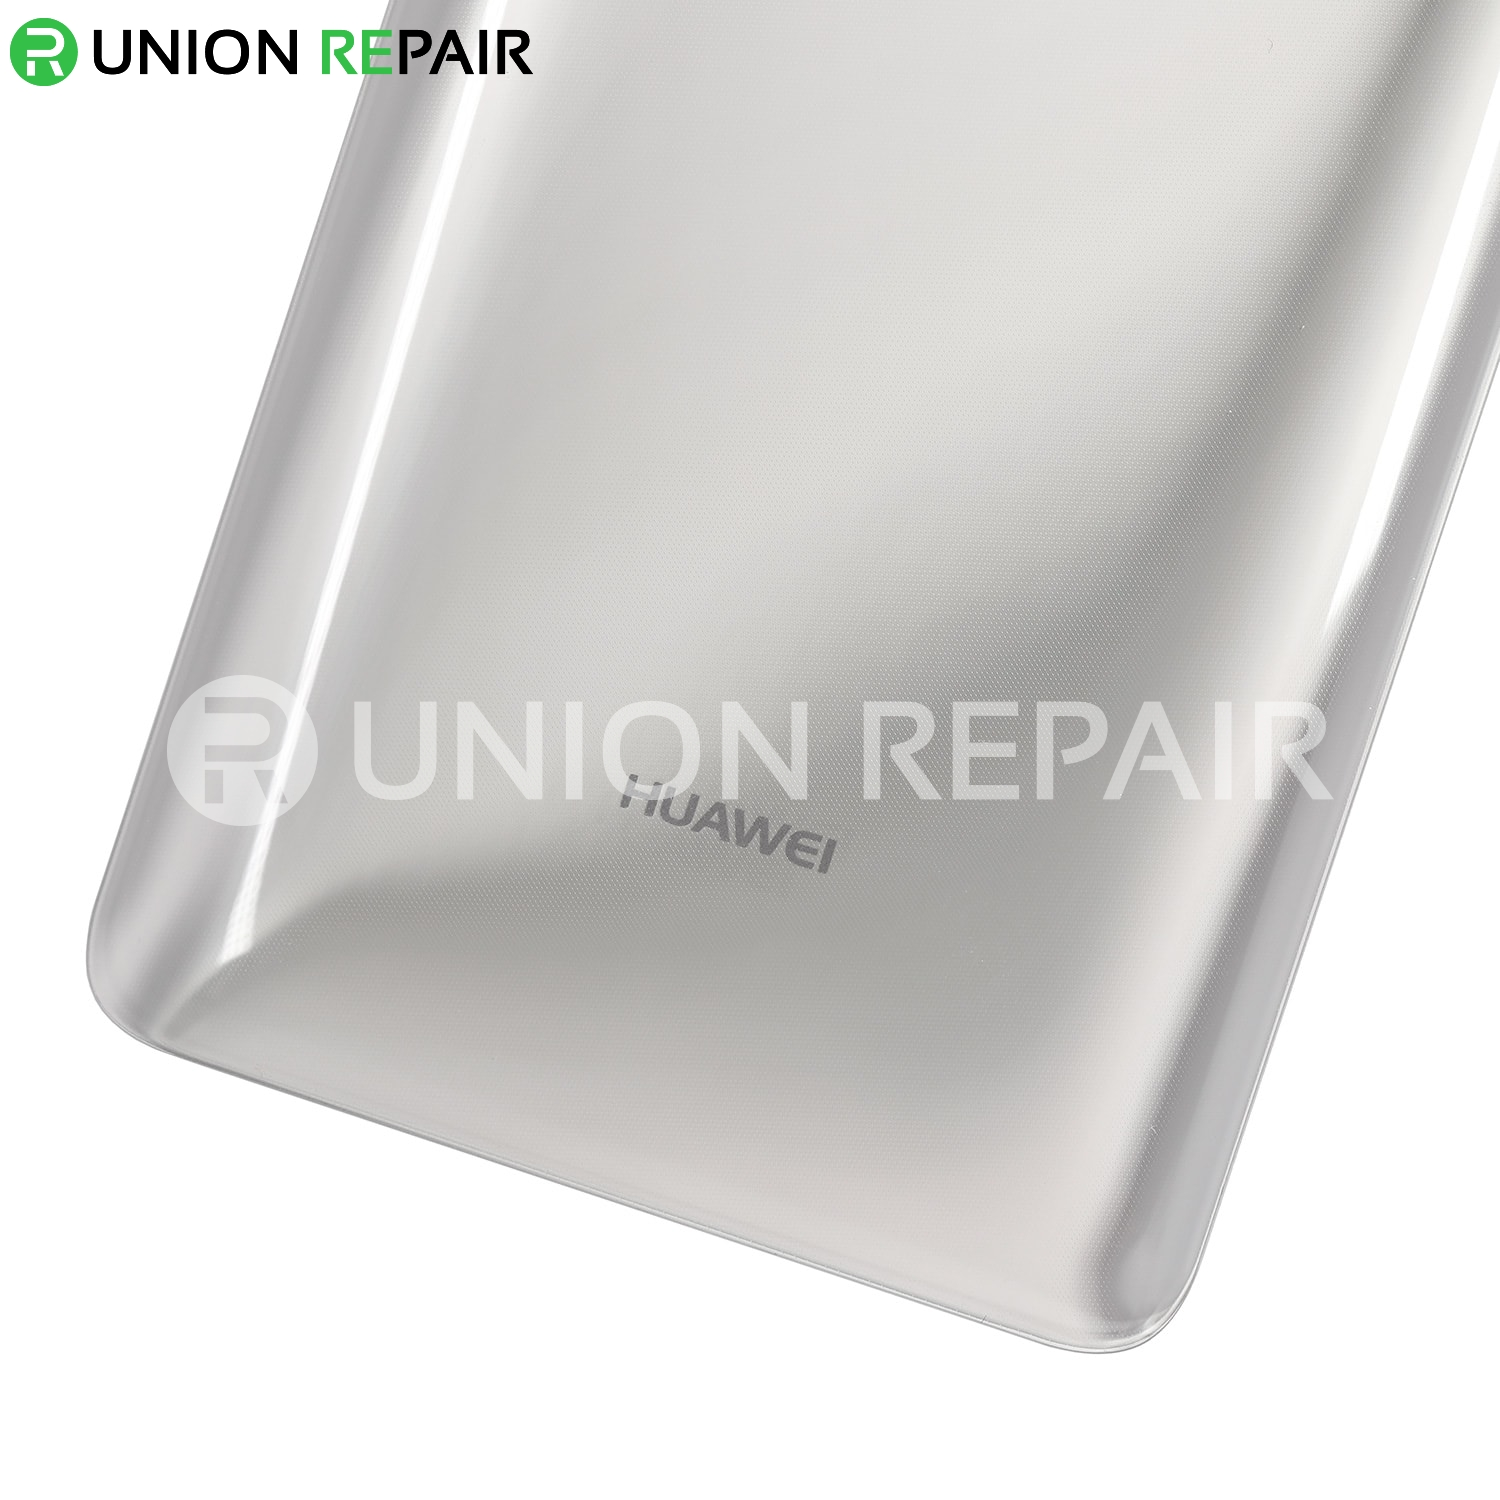 Replacement for Huawei Mate 10 Battery Door - Silver